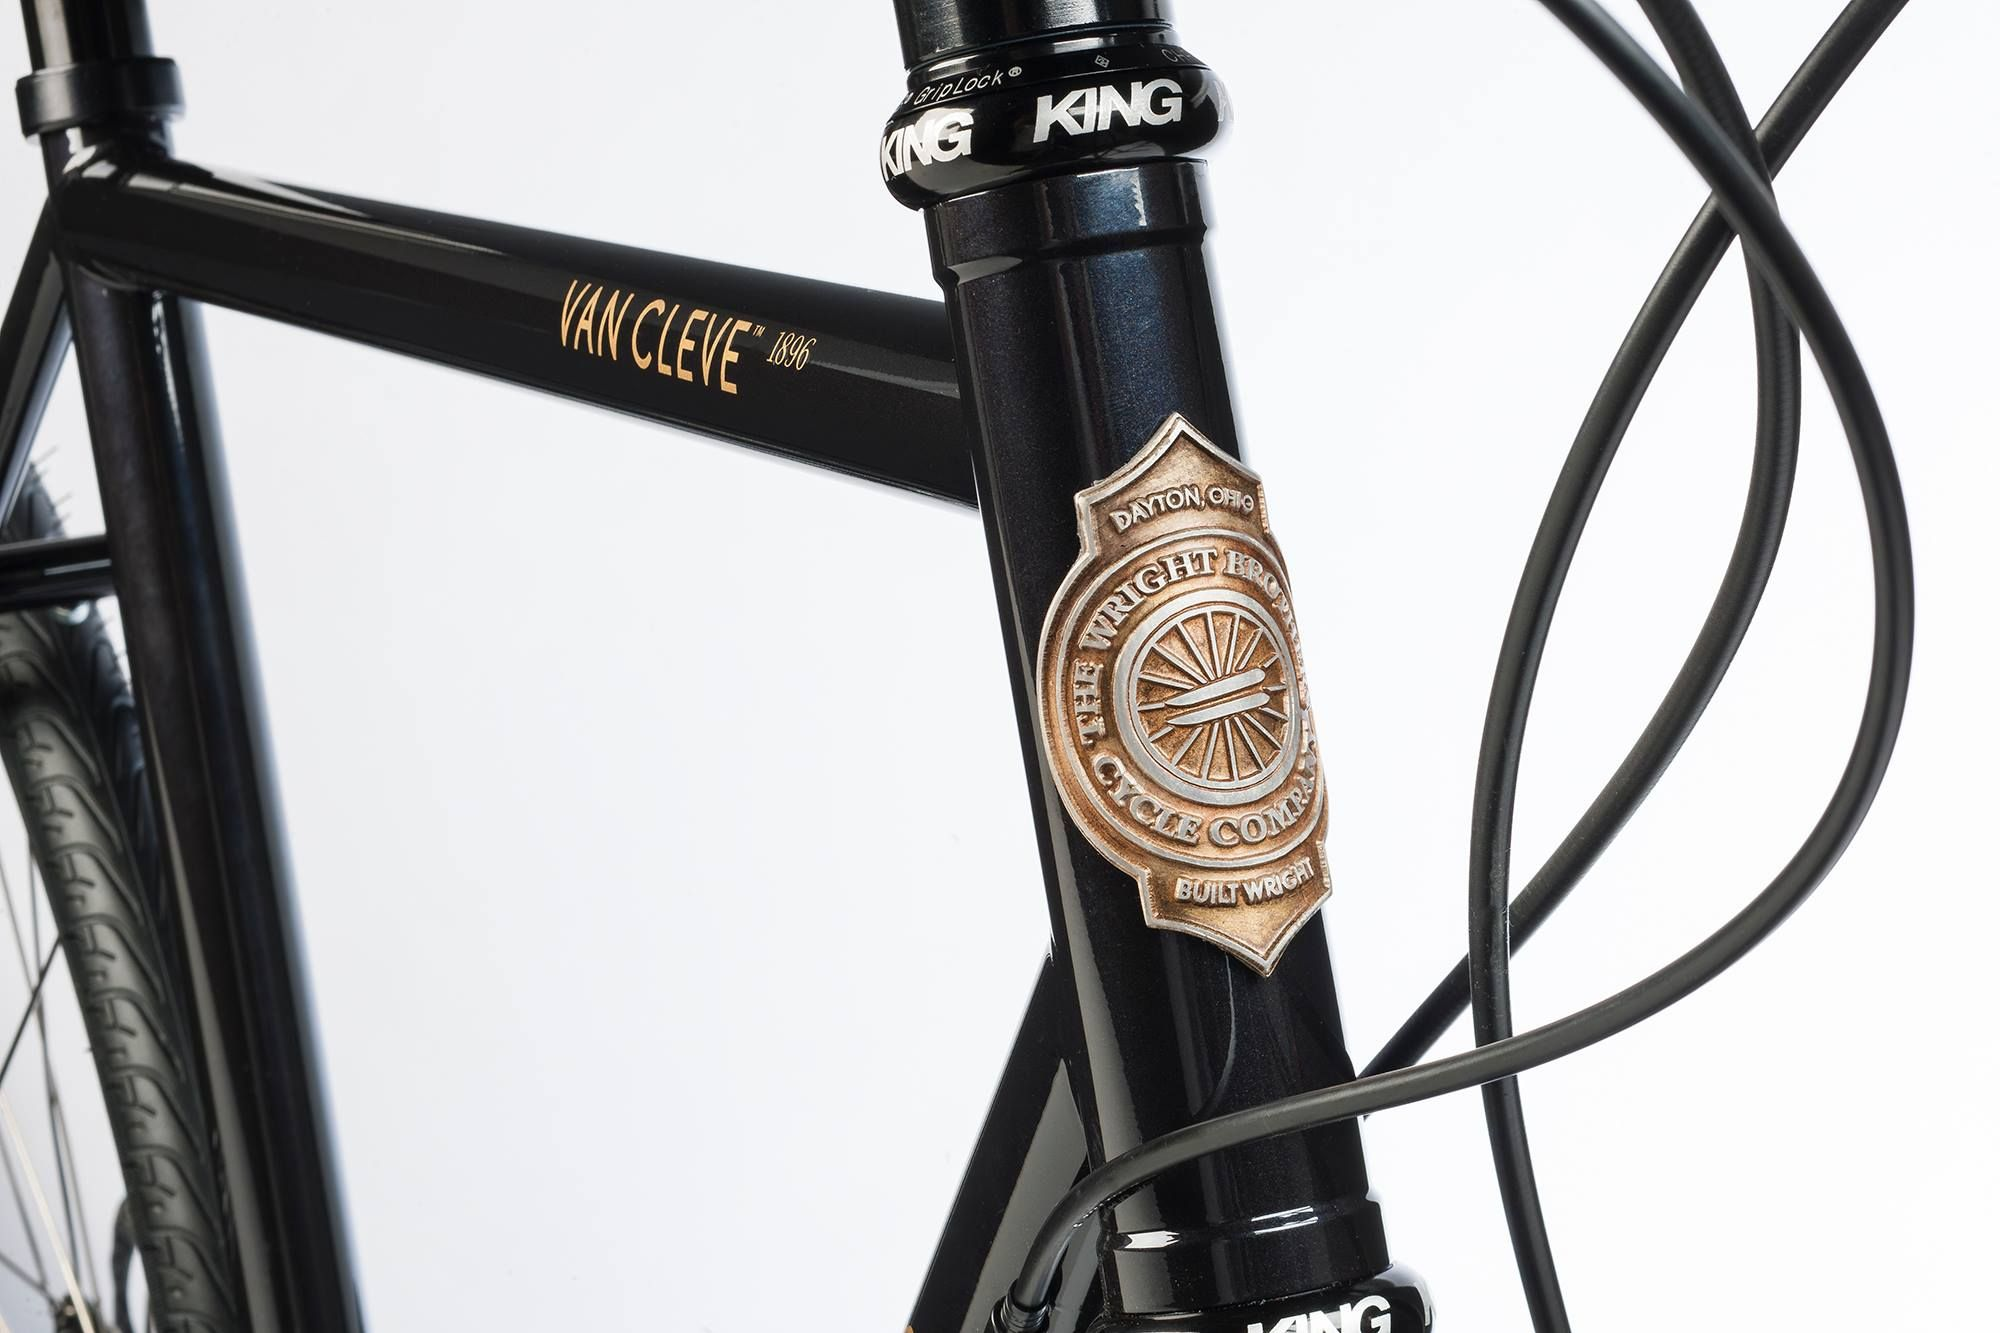 Van Cleve Bicycle Wright Brothers Usa Store Wright Cycle Project